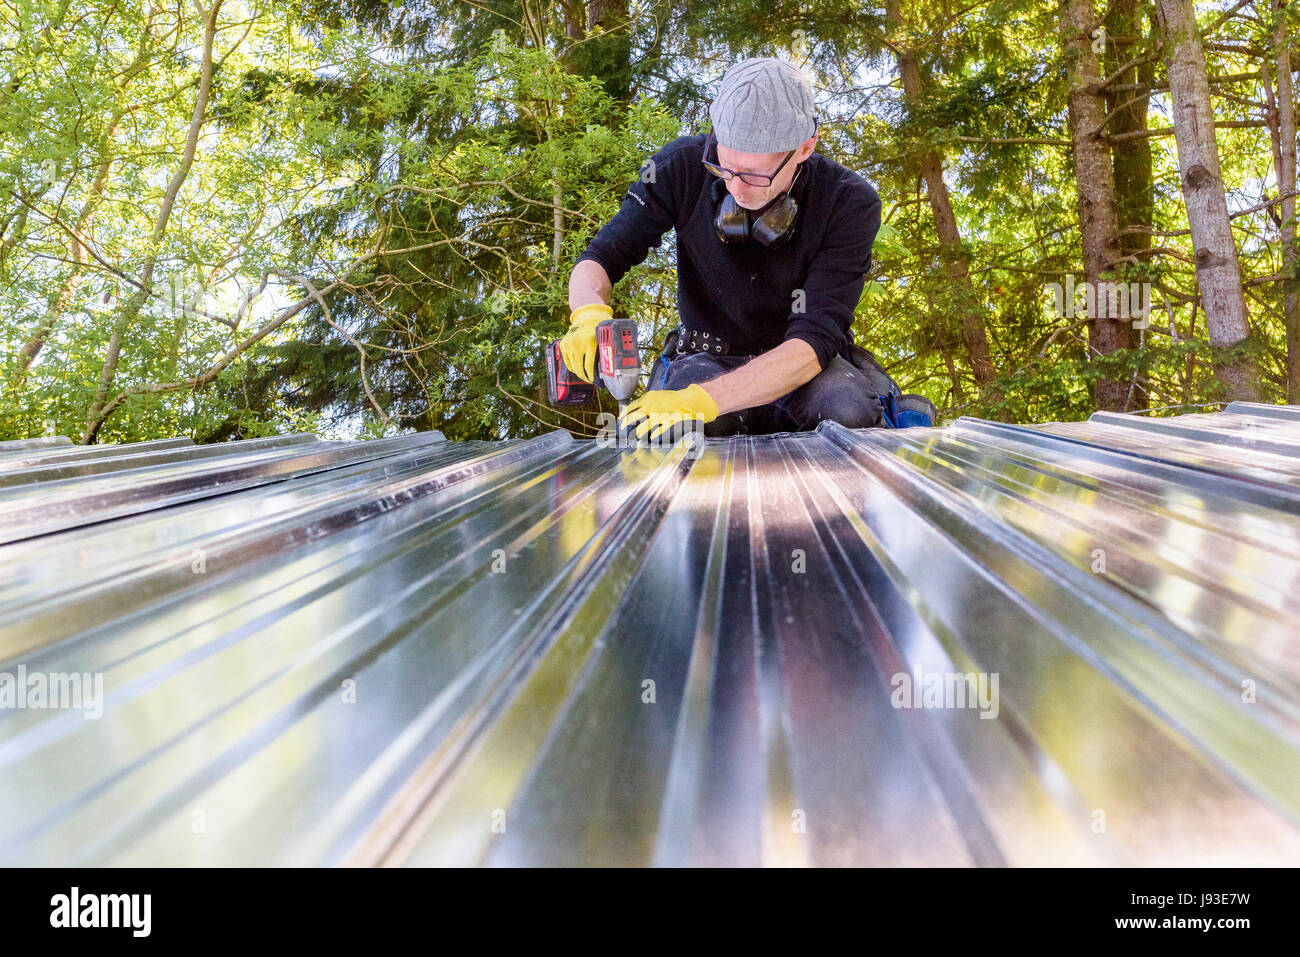 Man working installing metal roof on shed. - Stock Image